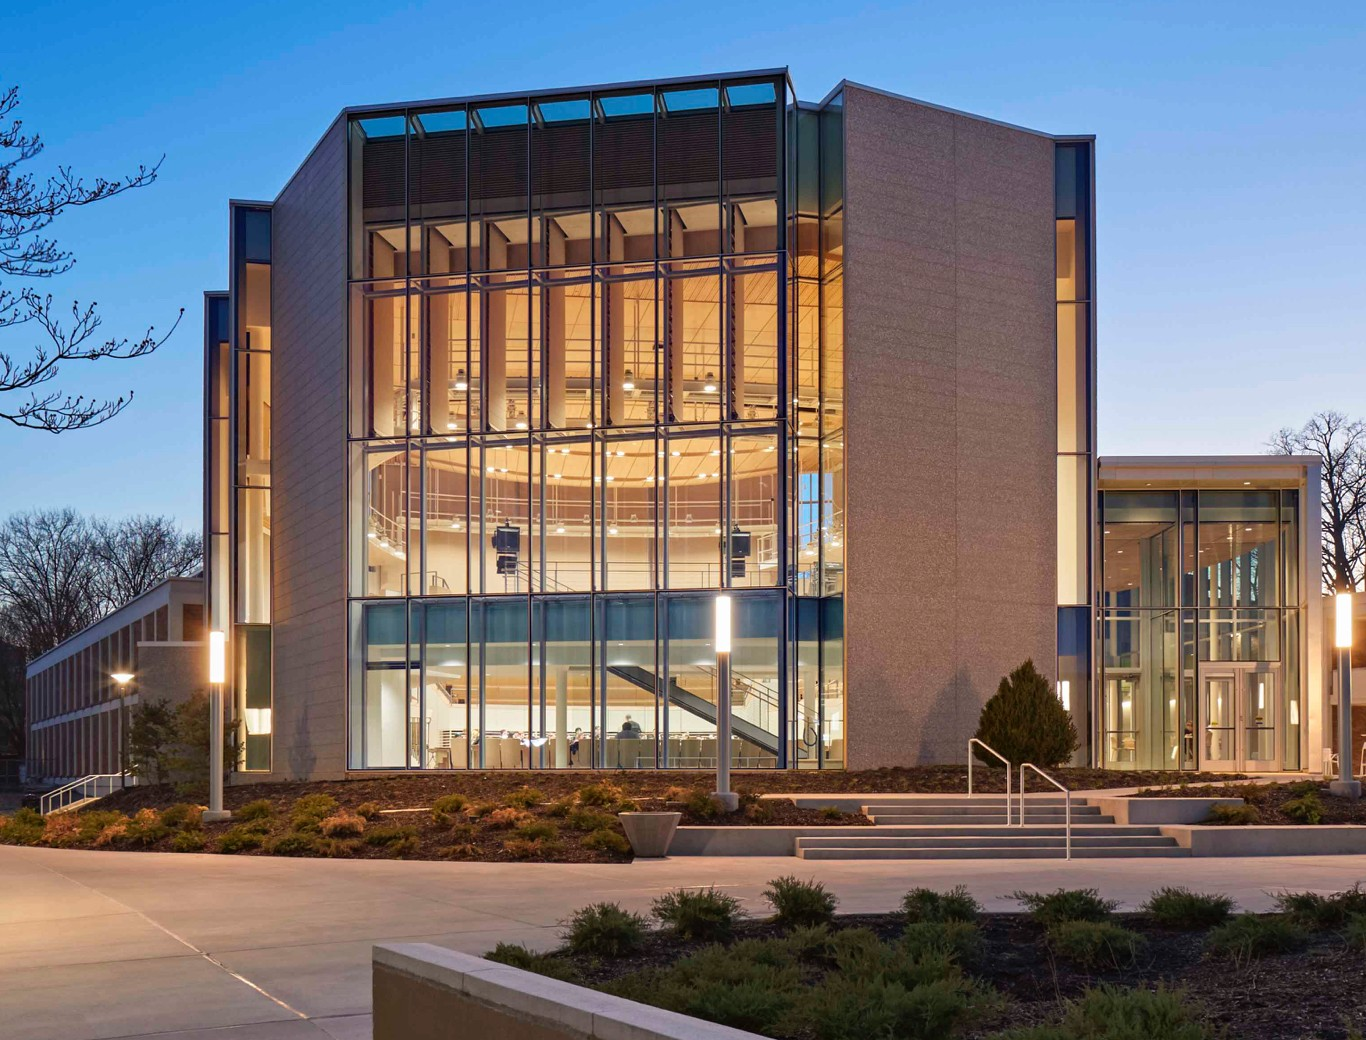 The modern glass facade of Esber Recital Hall illuminating an evening on University Park campus.